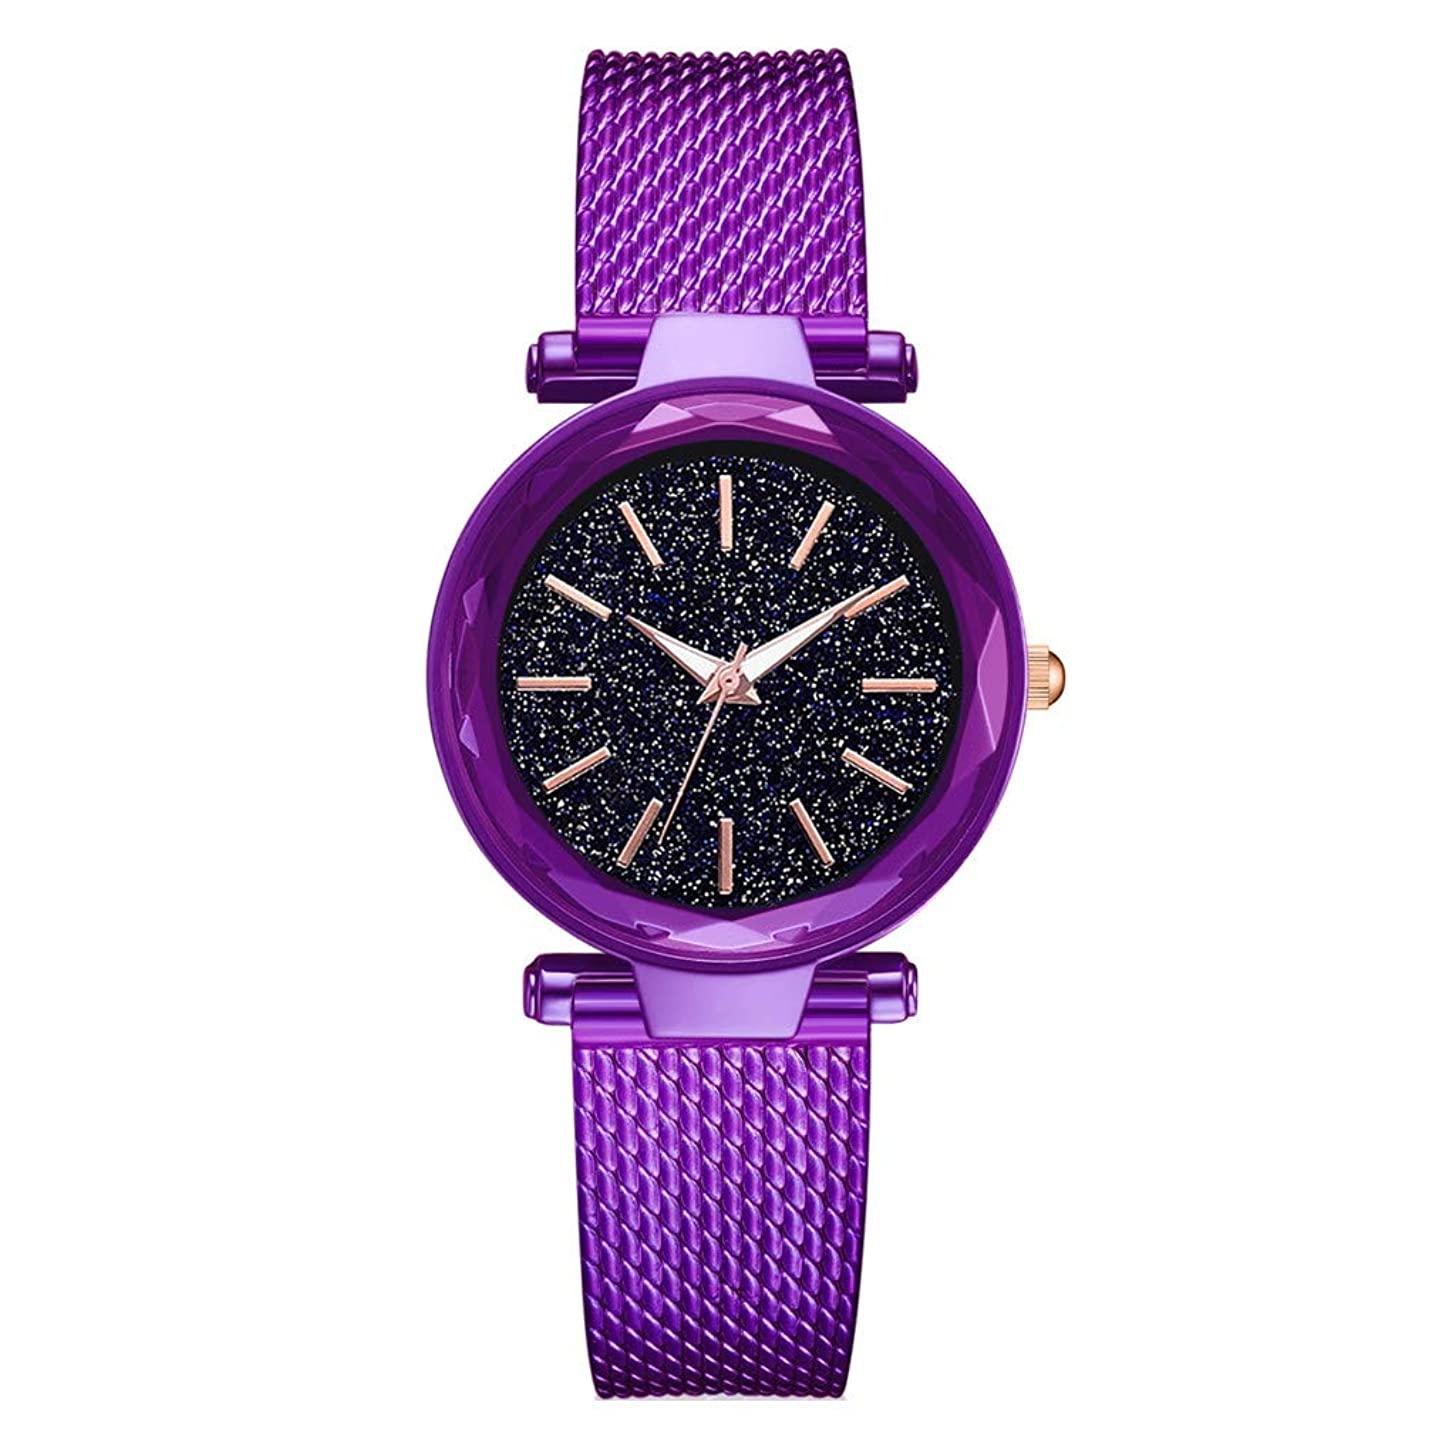 LUCAMORE Women Starry Sky Analogue Quartz Watches with Stainless Steel Band Diamond Dial Lady Wrist Watches